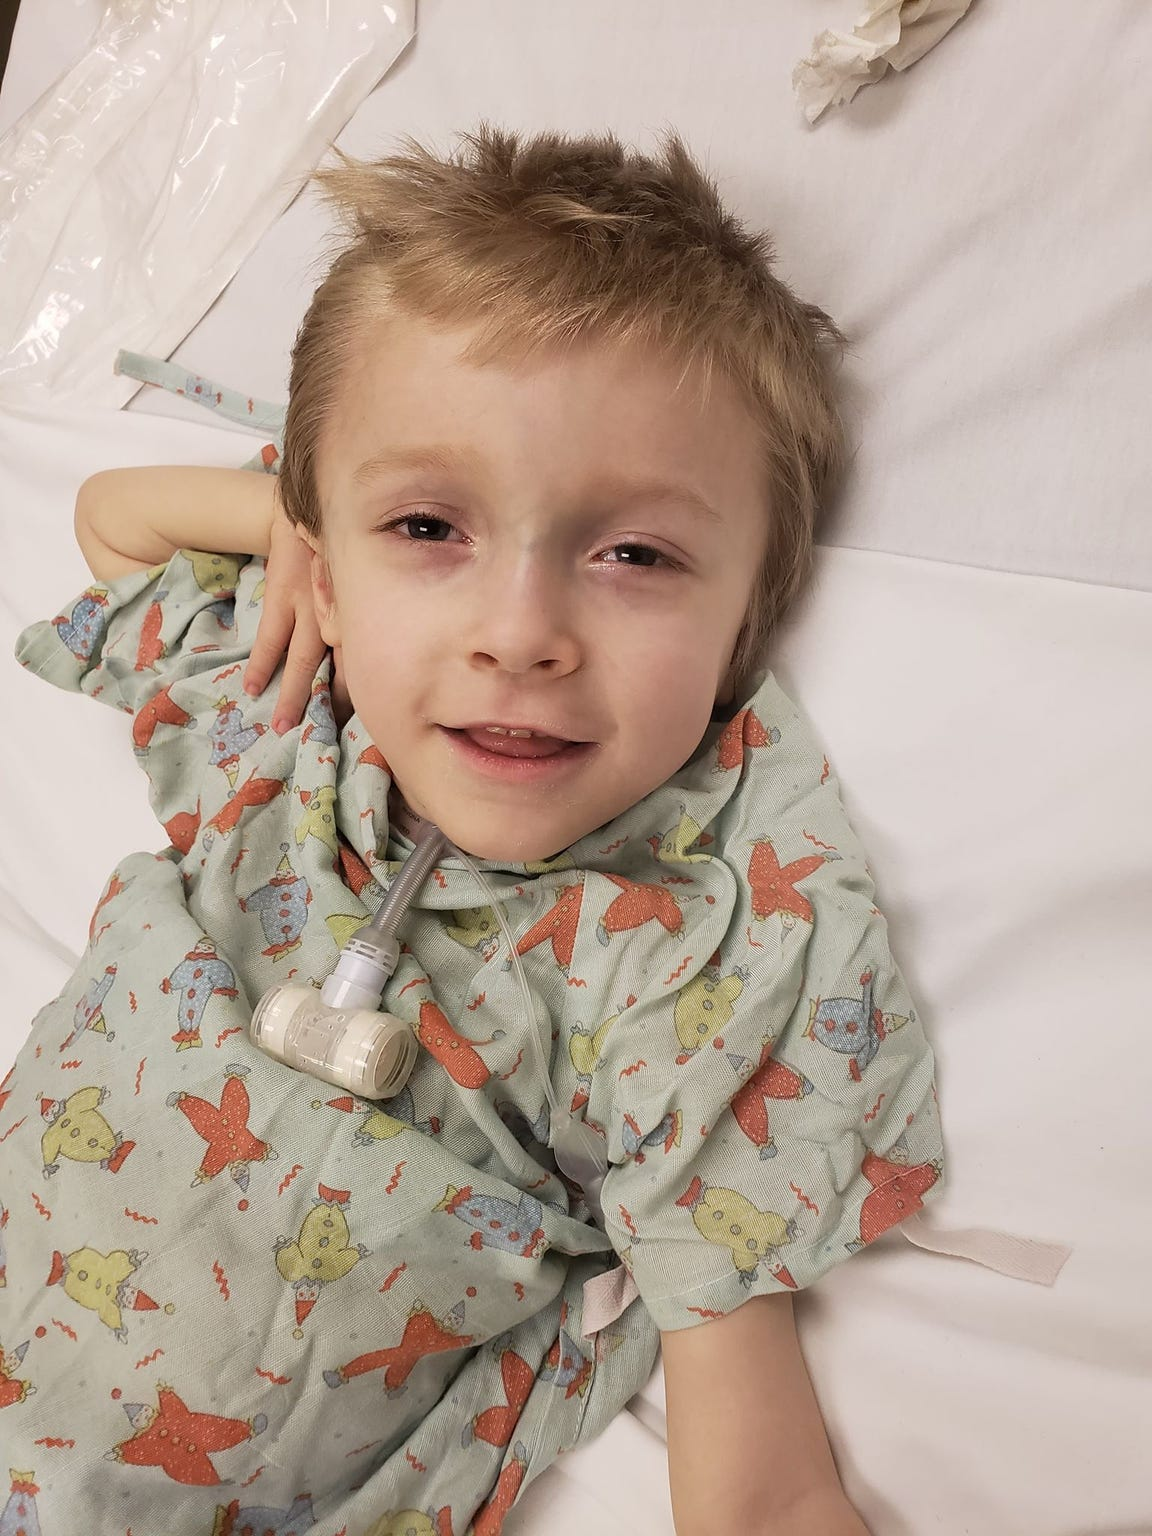 Logan Lacy, 4, before surgery on Dec. 18 in California.